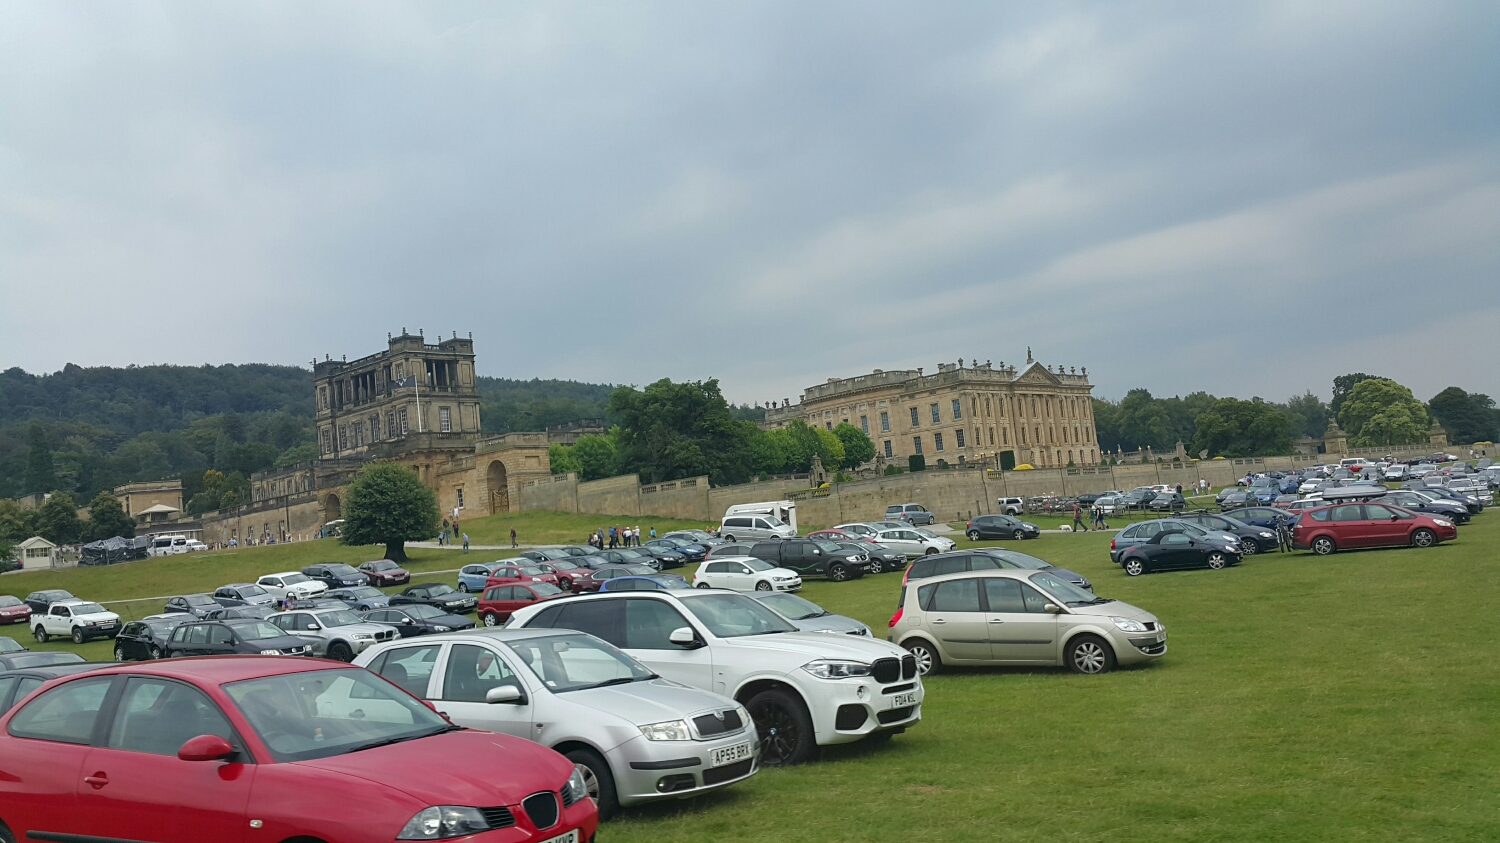 A major tourist attraction Chatsworth house